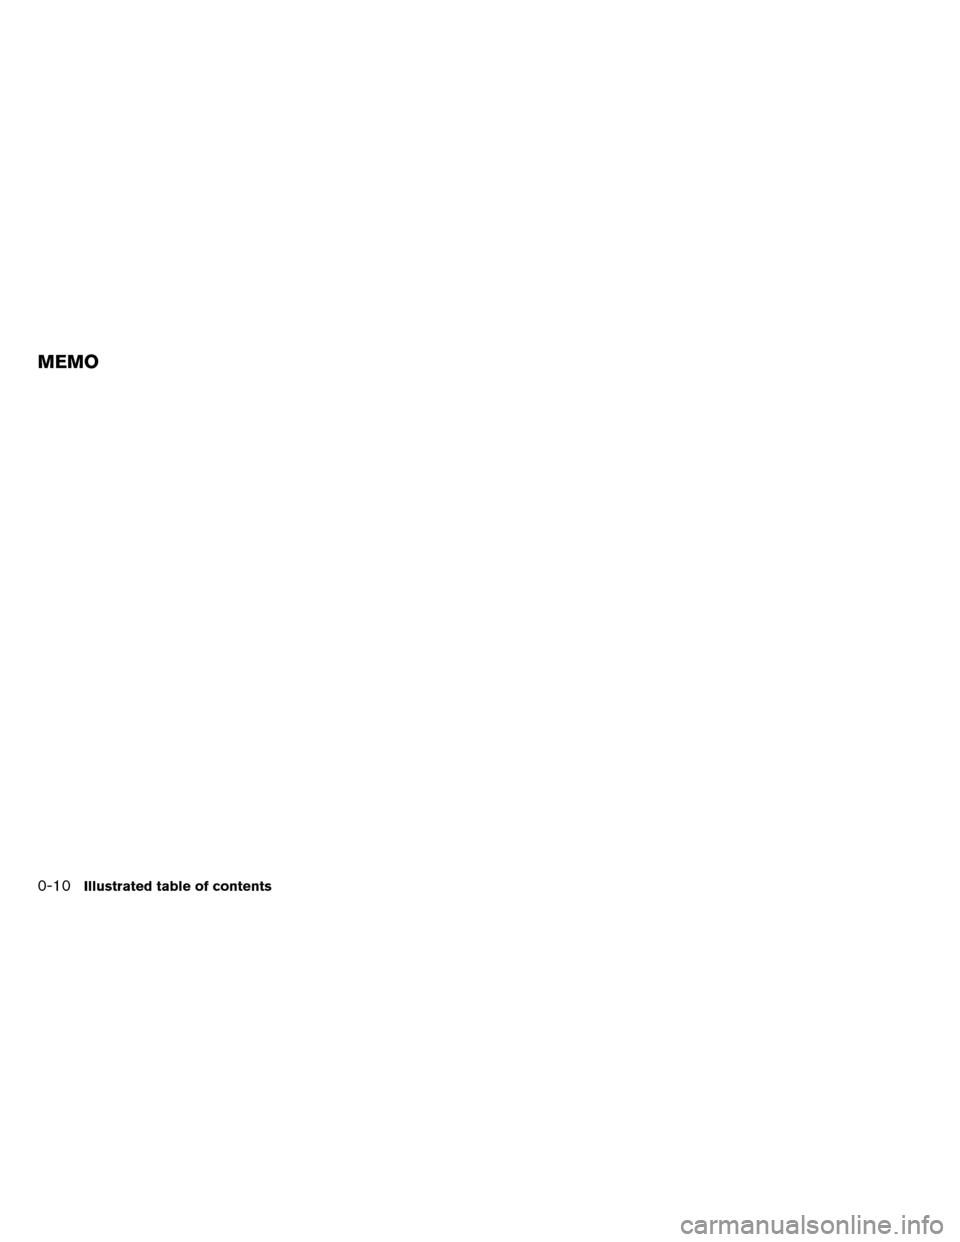 NISSAN ALTIMA COUPE 2013 D32 / 4.G User Guide MEMO 0-10Illustrated table of contents